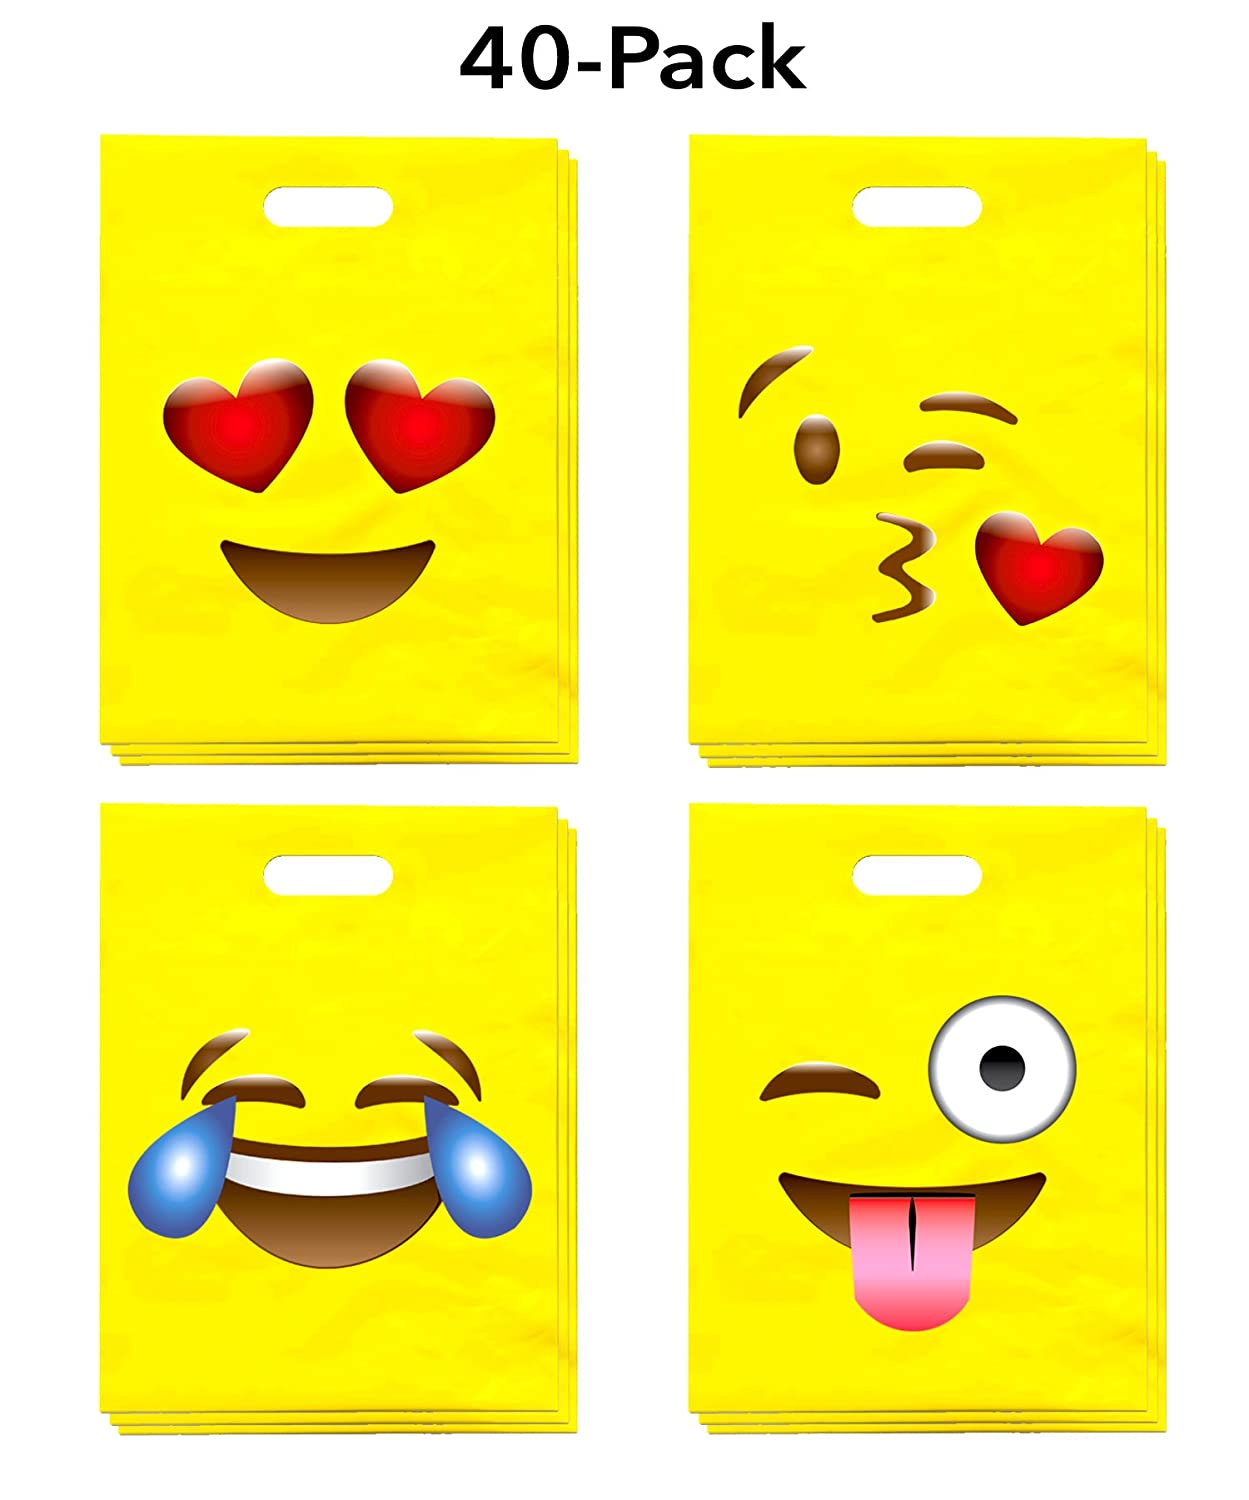 We provide four different styles of emoji party favor bags to make your next emoji themed party even more creative it allows kids to express